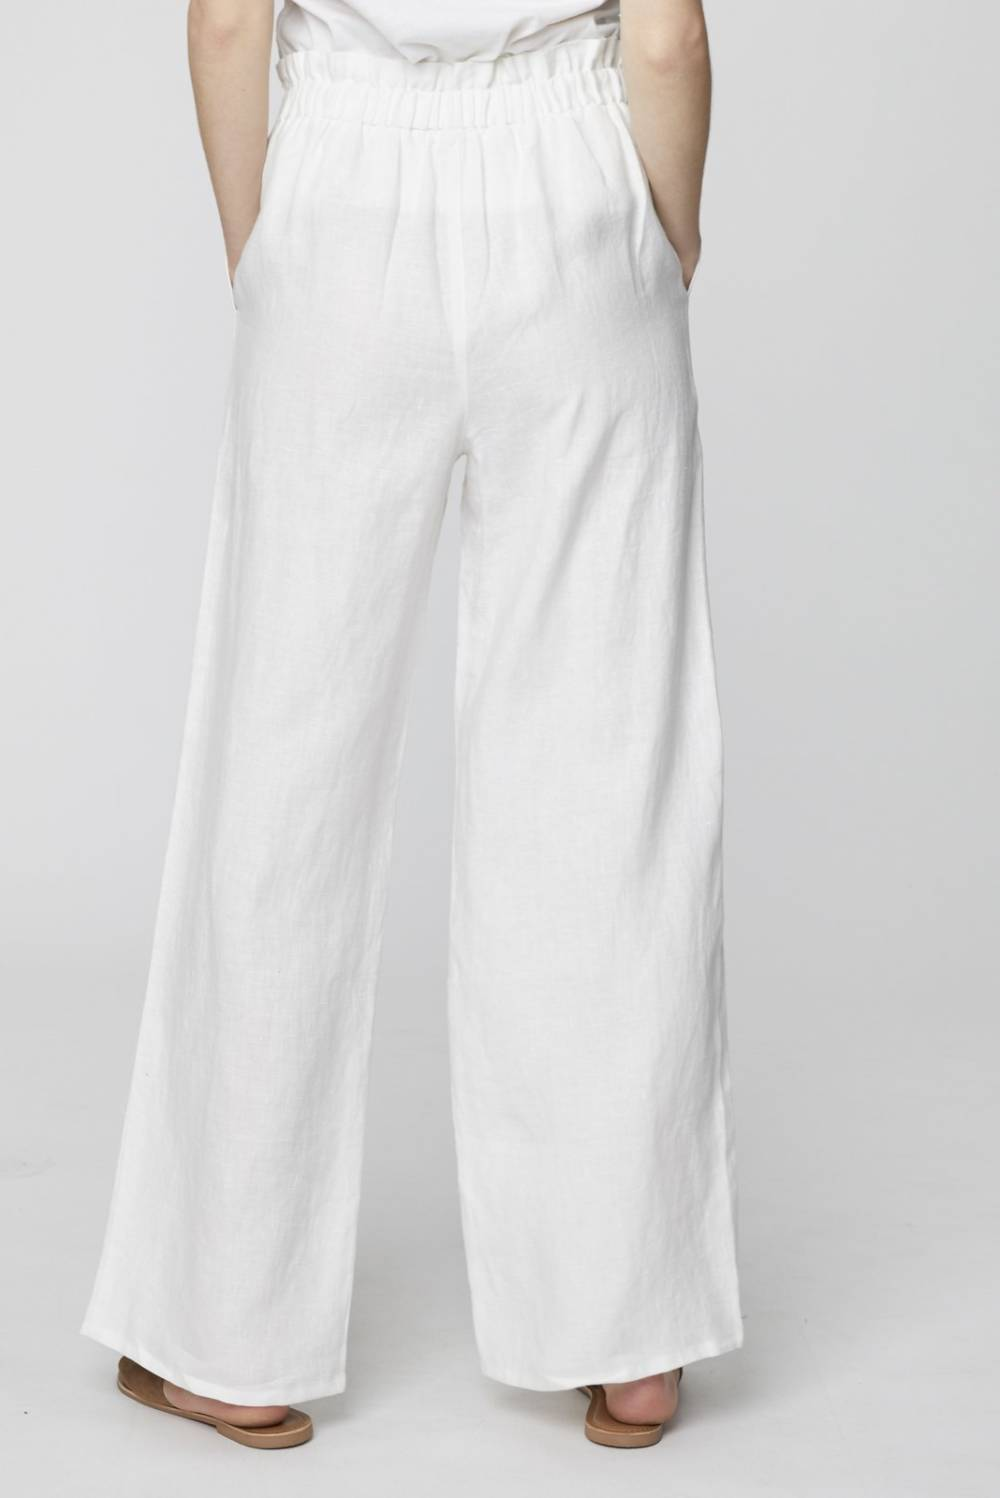 WSB4175 Rosabel Trousers Thought Clothing Katie Kerr Women's Clothing